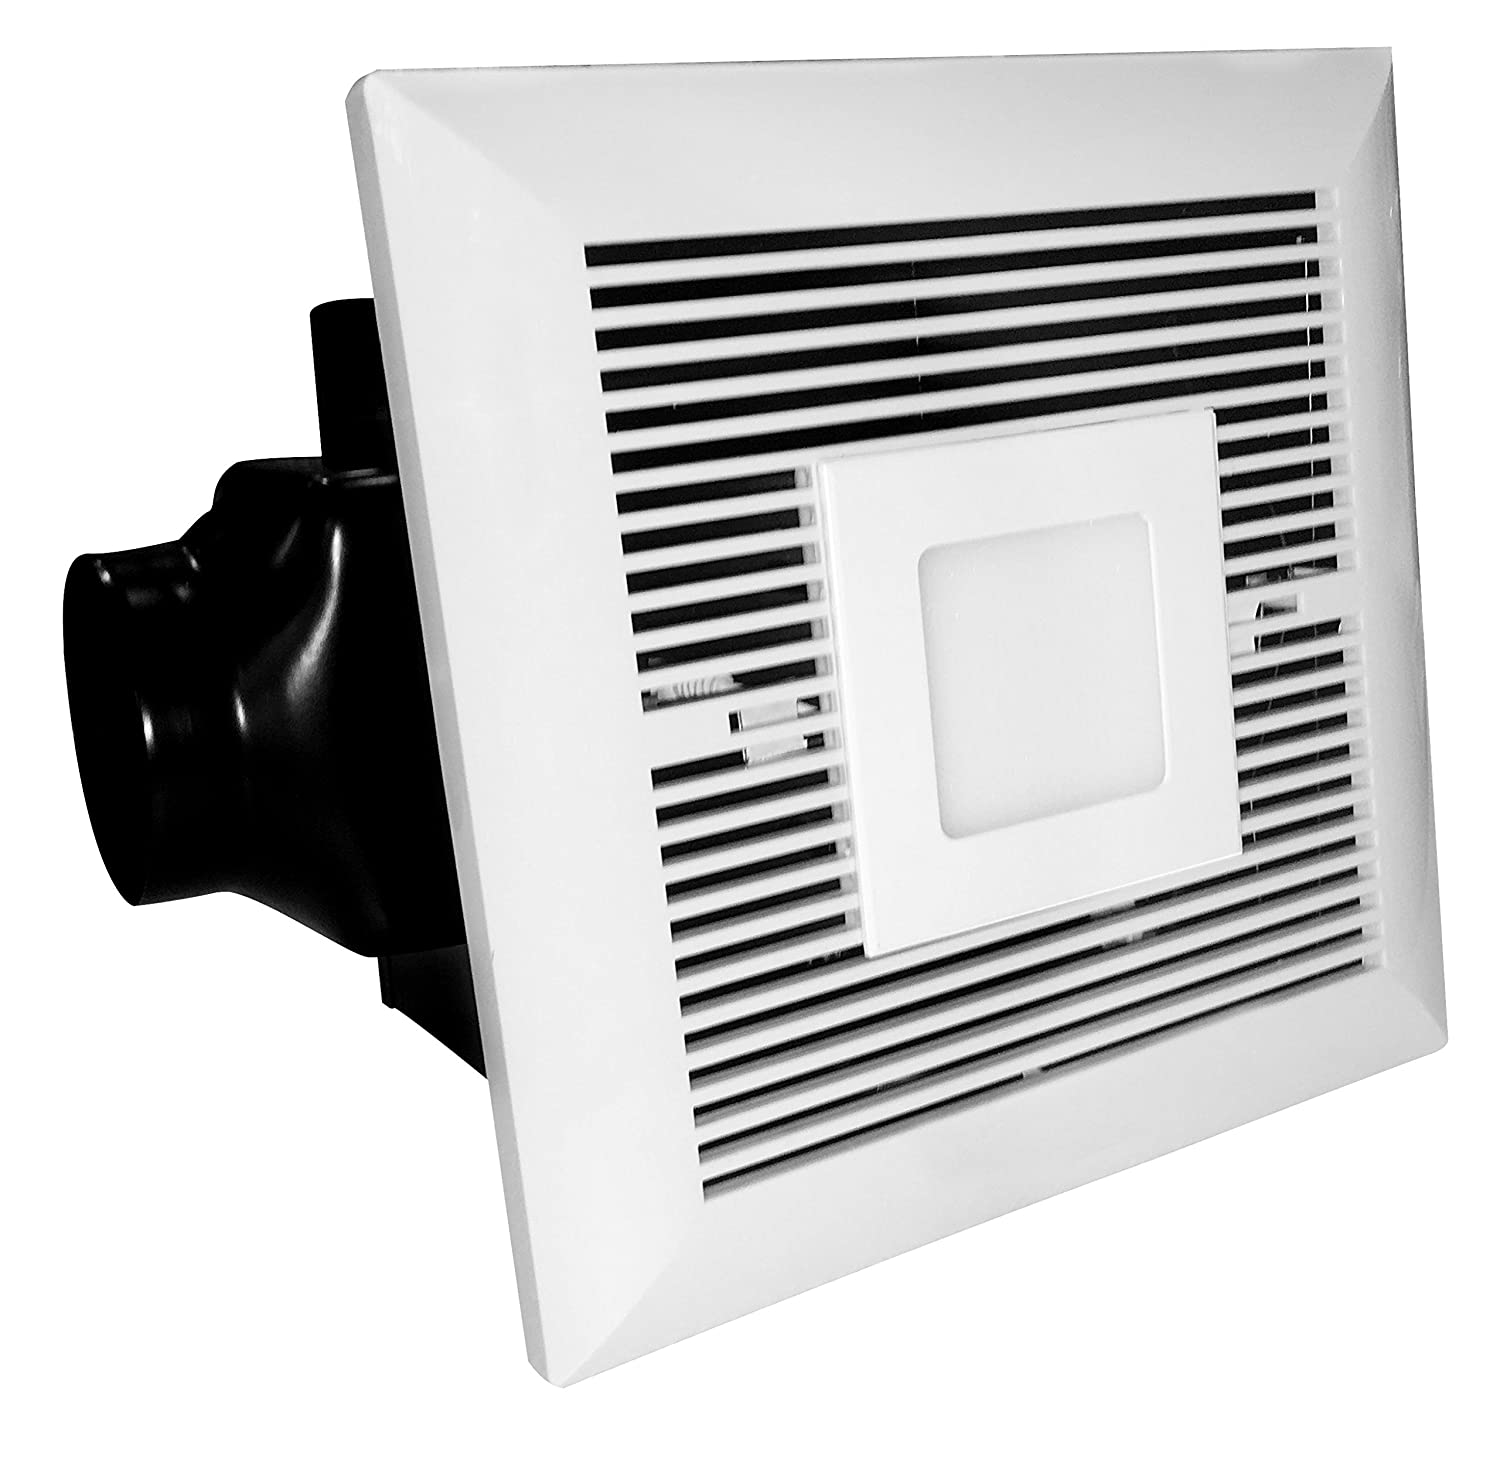 Groovy Tatsumaki Ld 120 Electric Bathroom Fan 120 Cfm Ultra Quiet Exhaust Ventilation Fan With 6W Led Light For Improved Airflow Air Circulation Download Free Architecture Designs Scobabritishbridgeorg